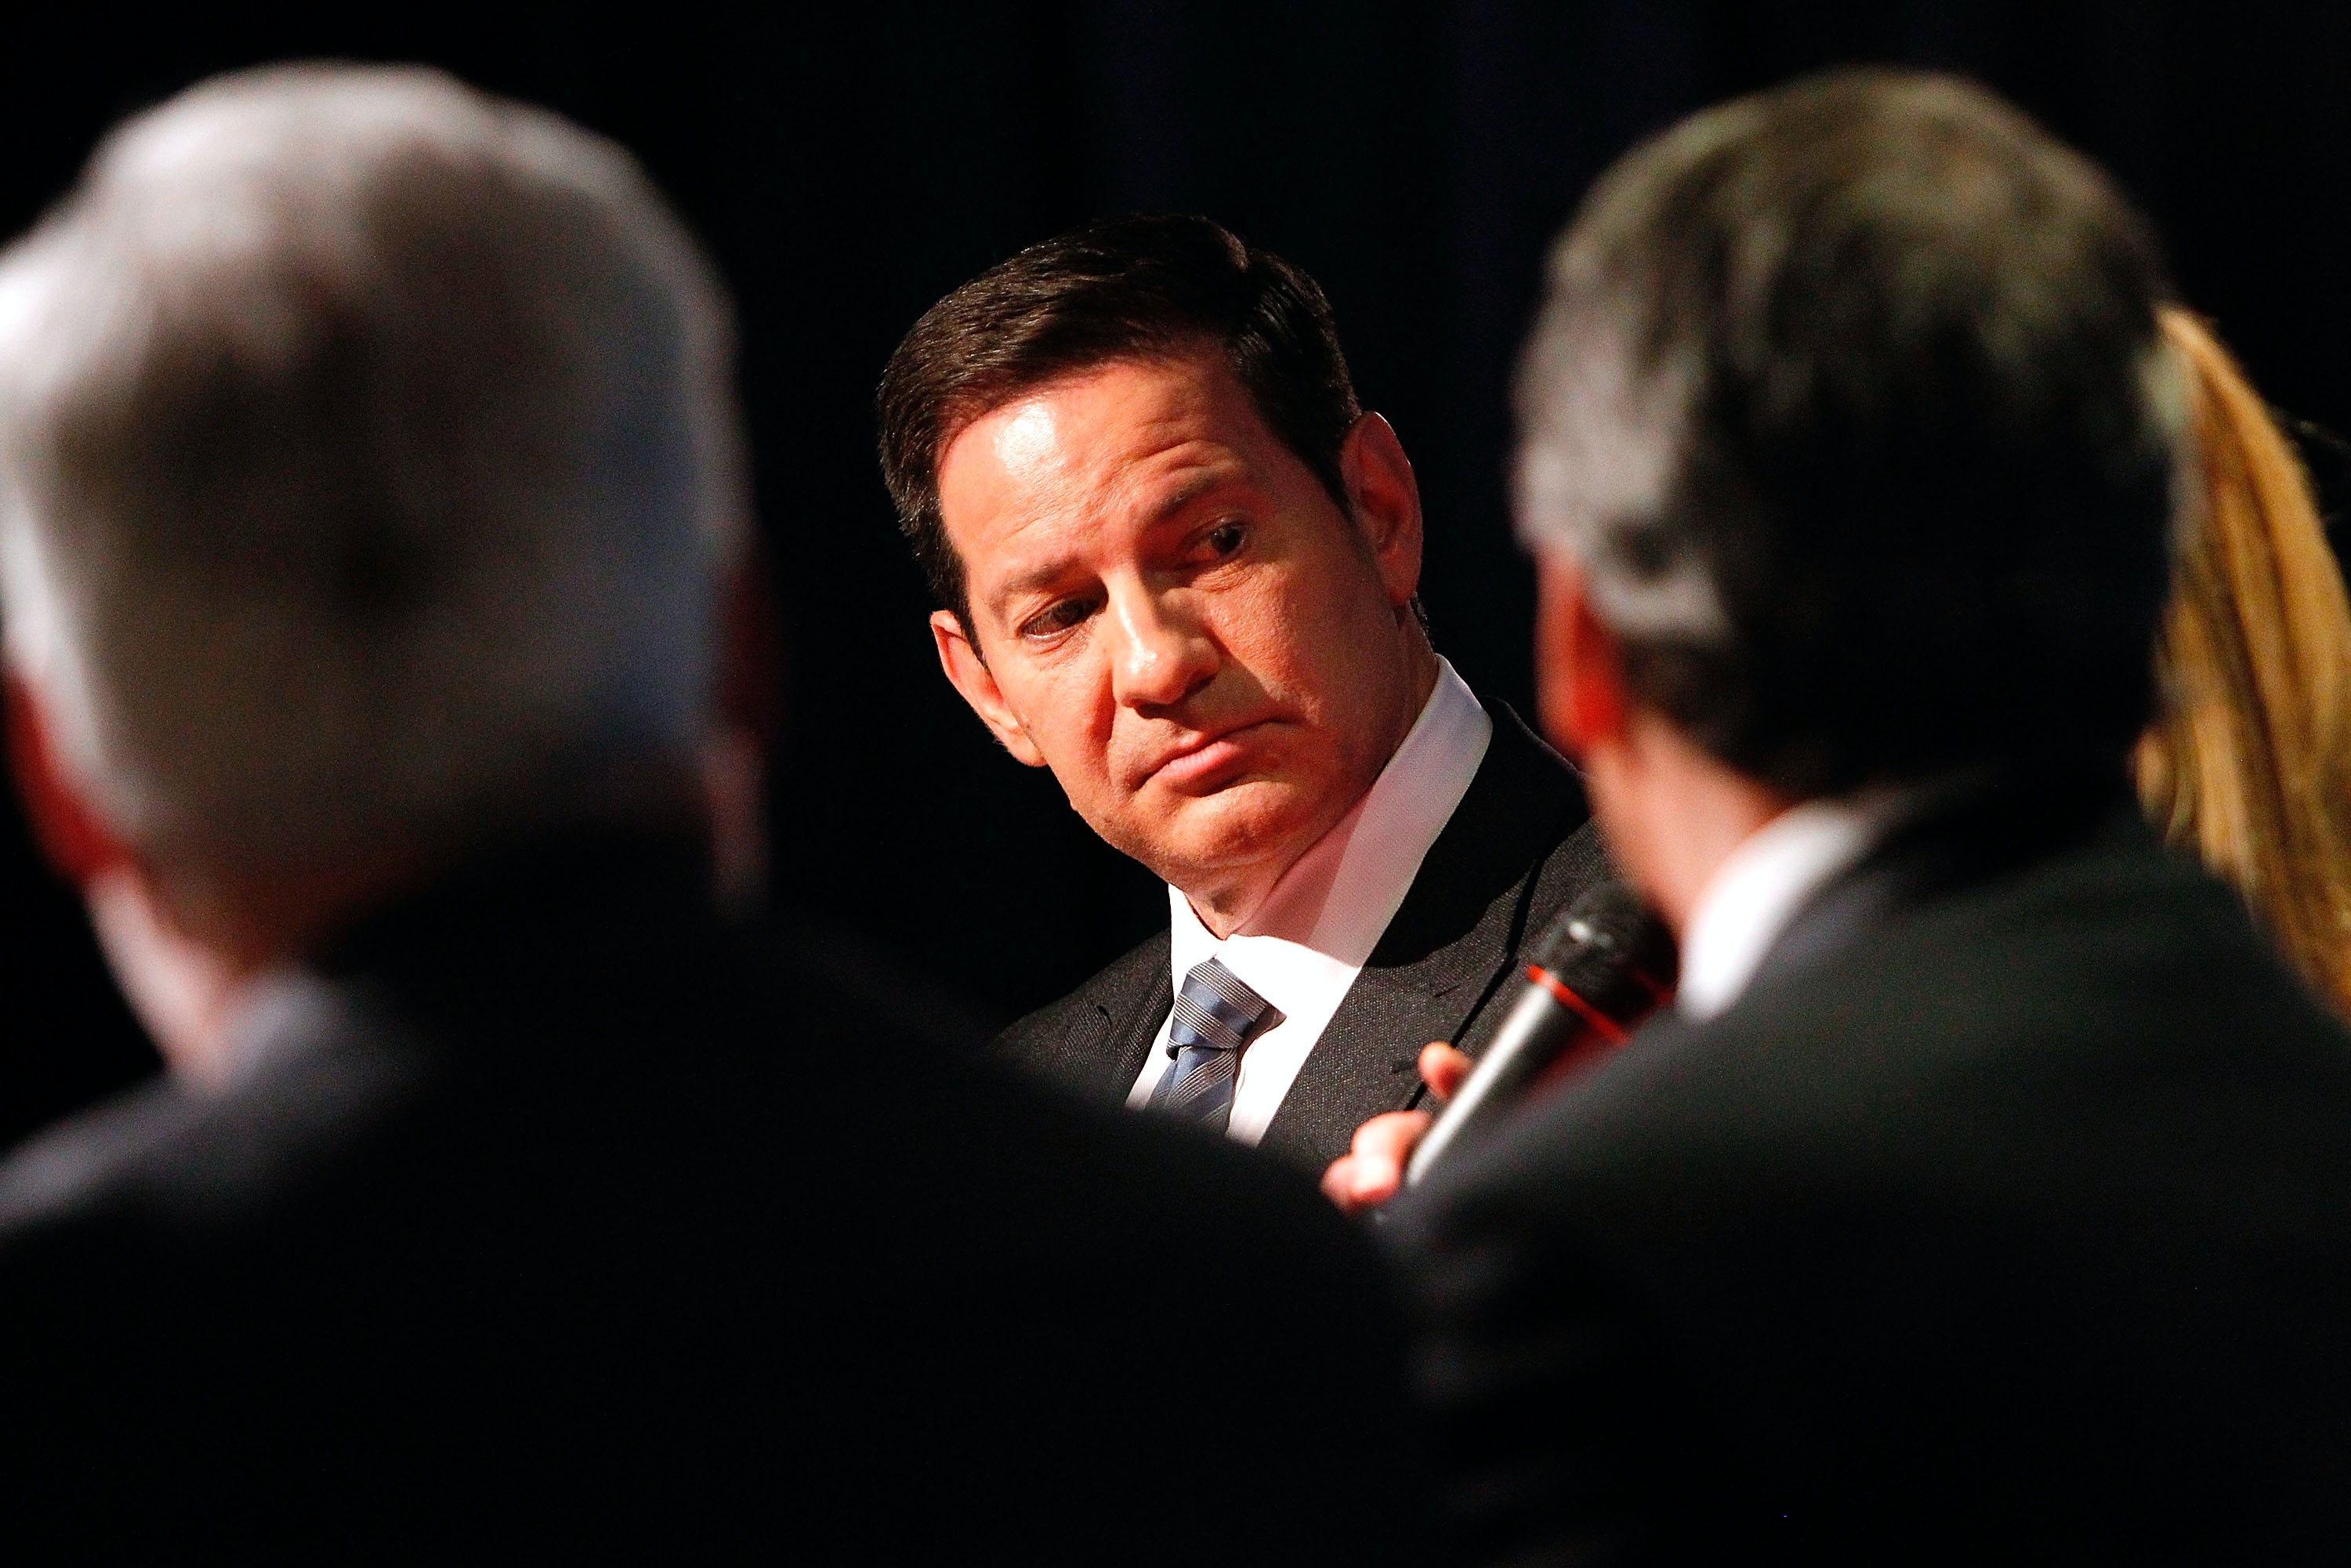 Multiple women accuse reporter Mark Halperin of sexual harassment